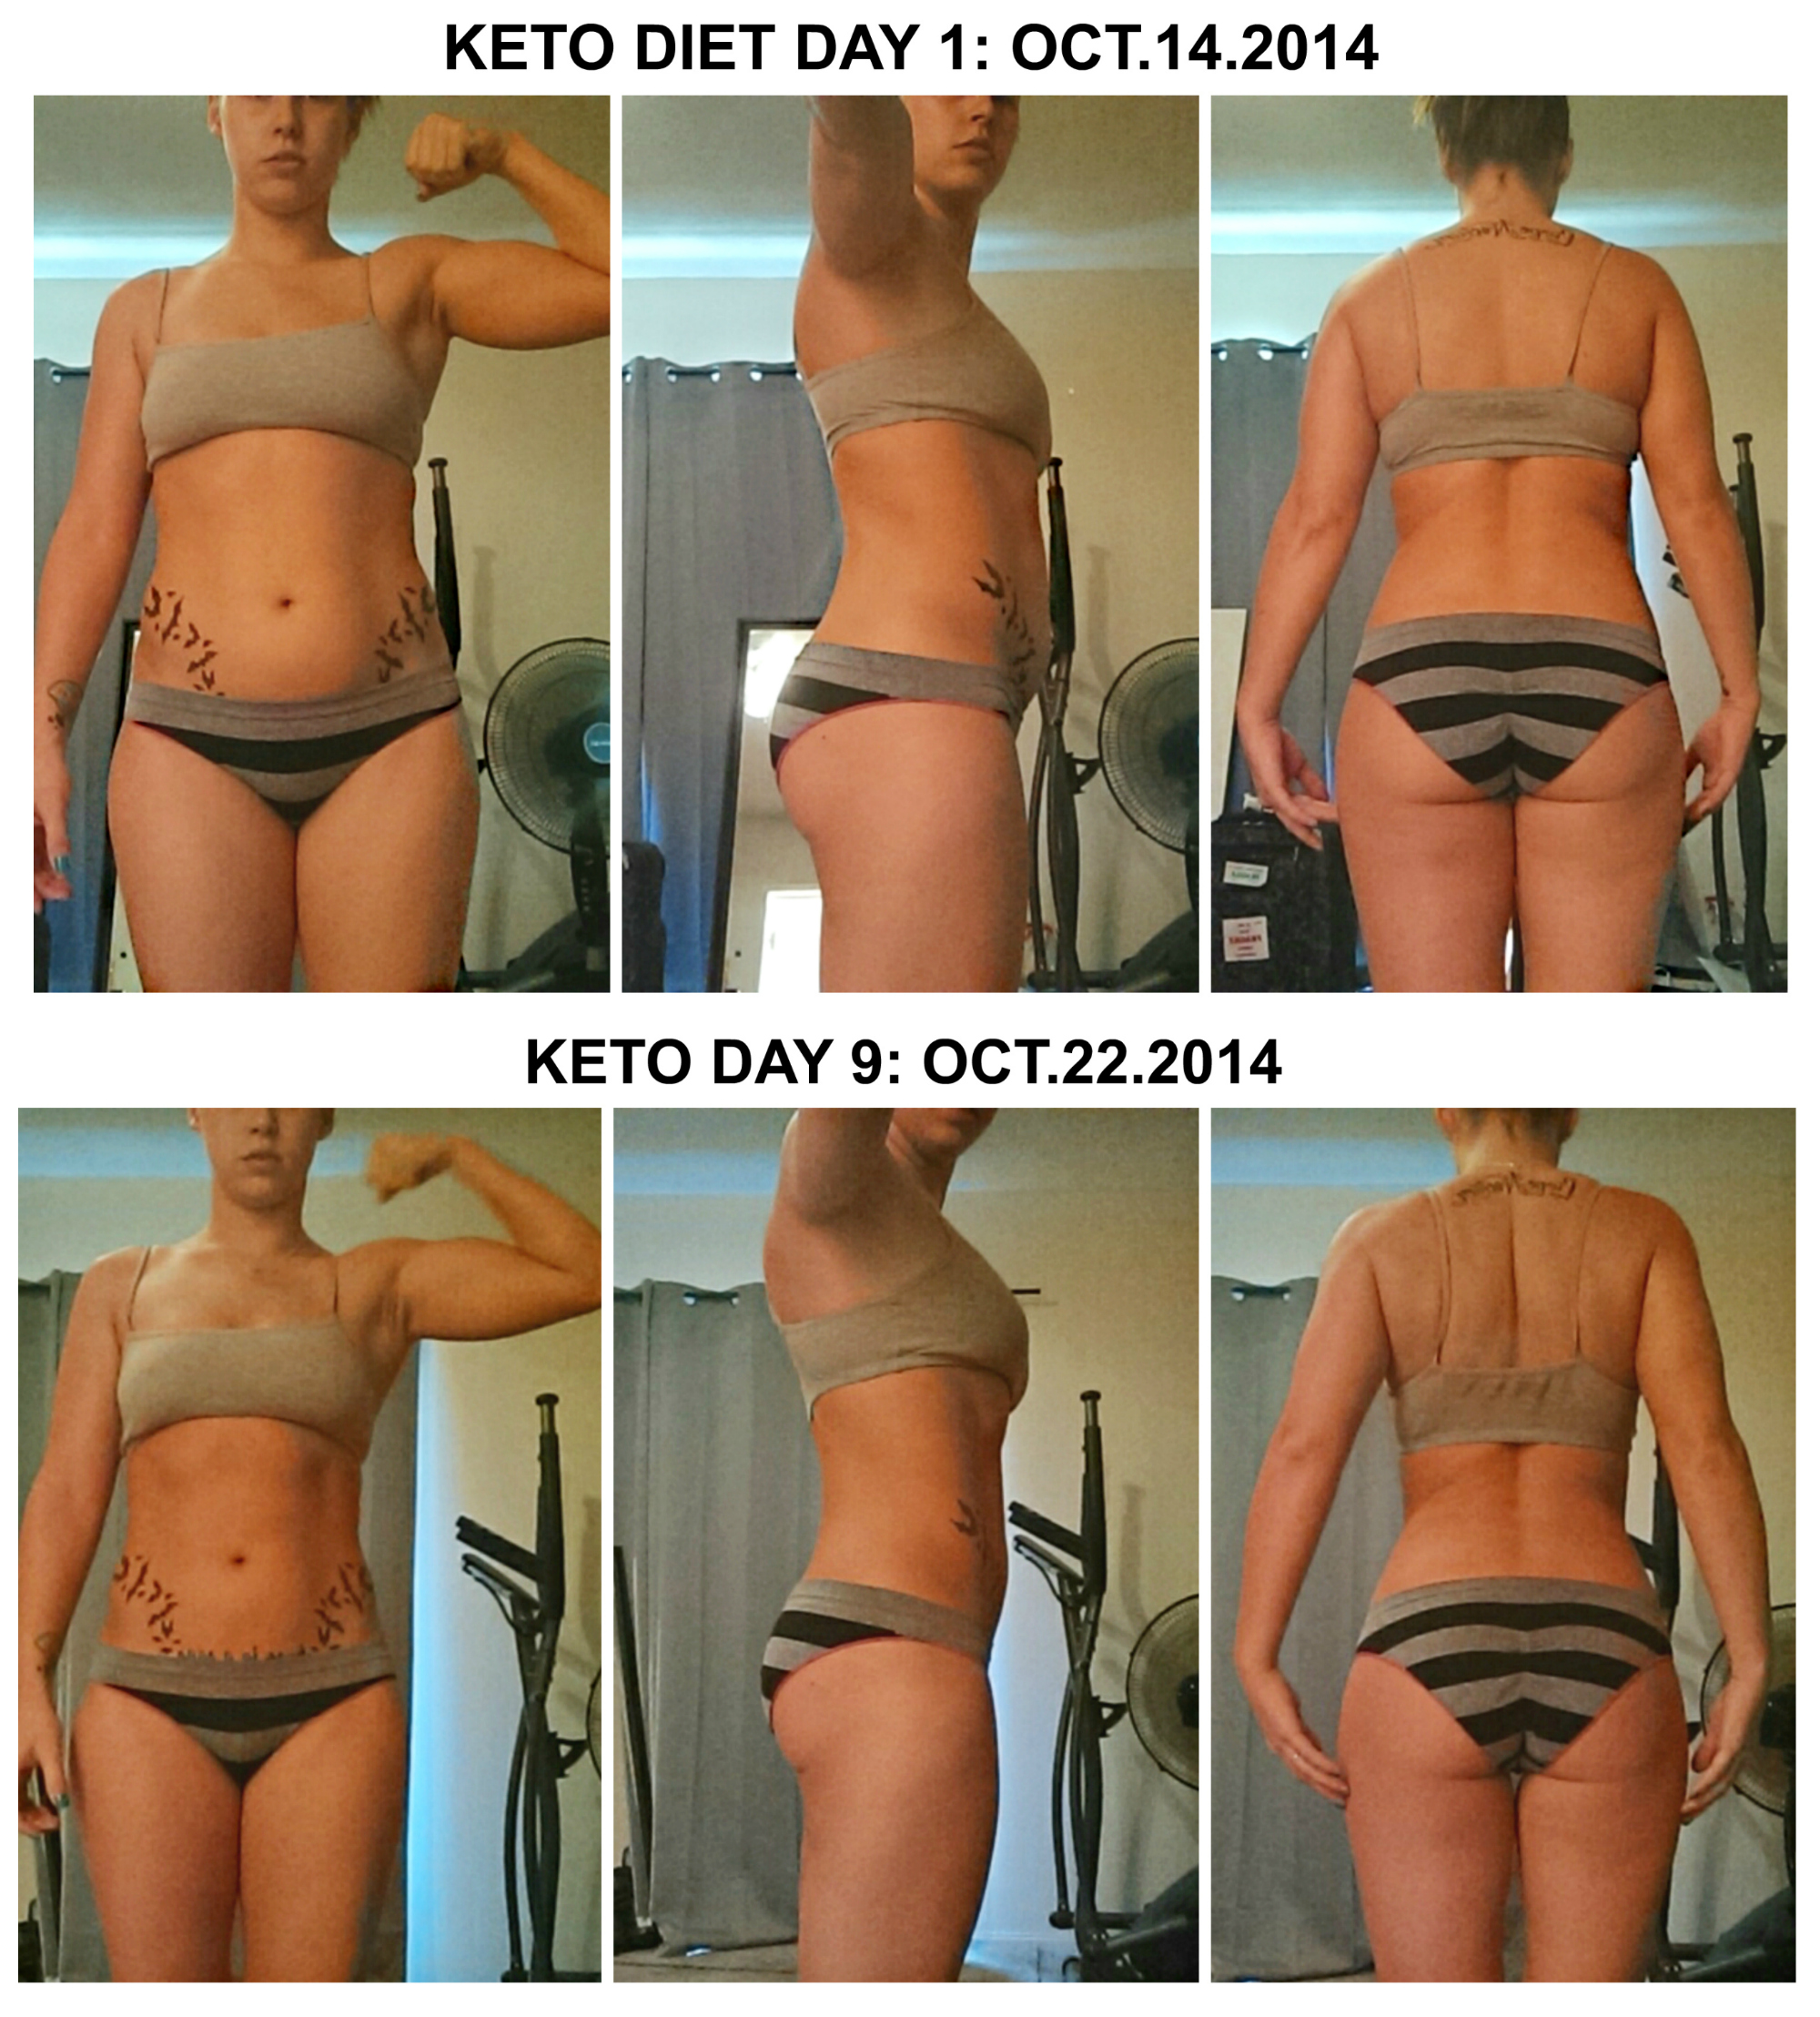 Keto diet and depo provera myfitnesspal keto day 1 and 9 collageg ccuart Images